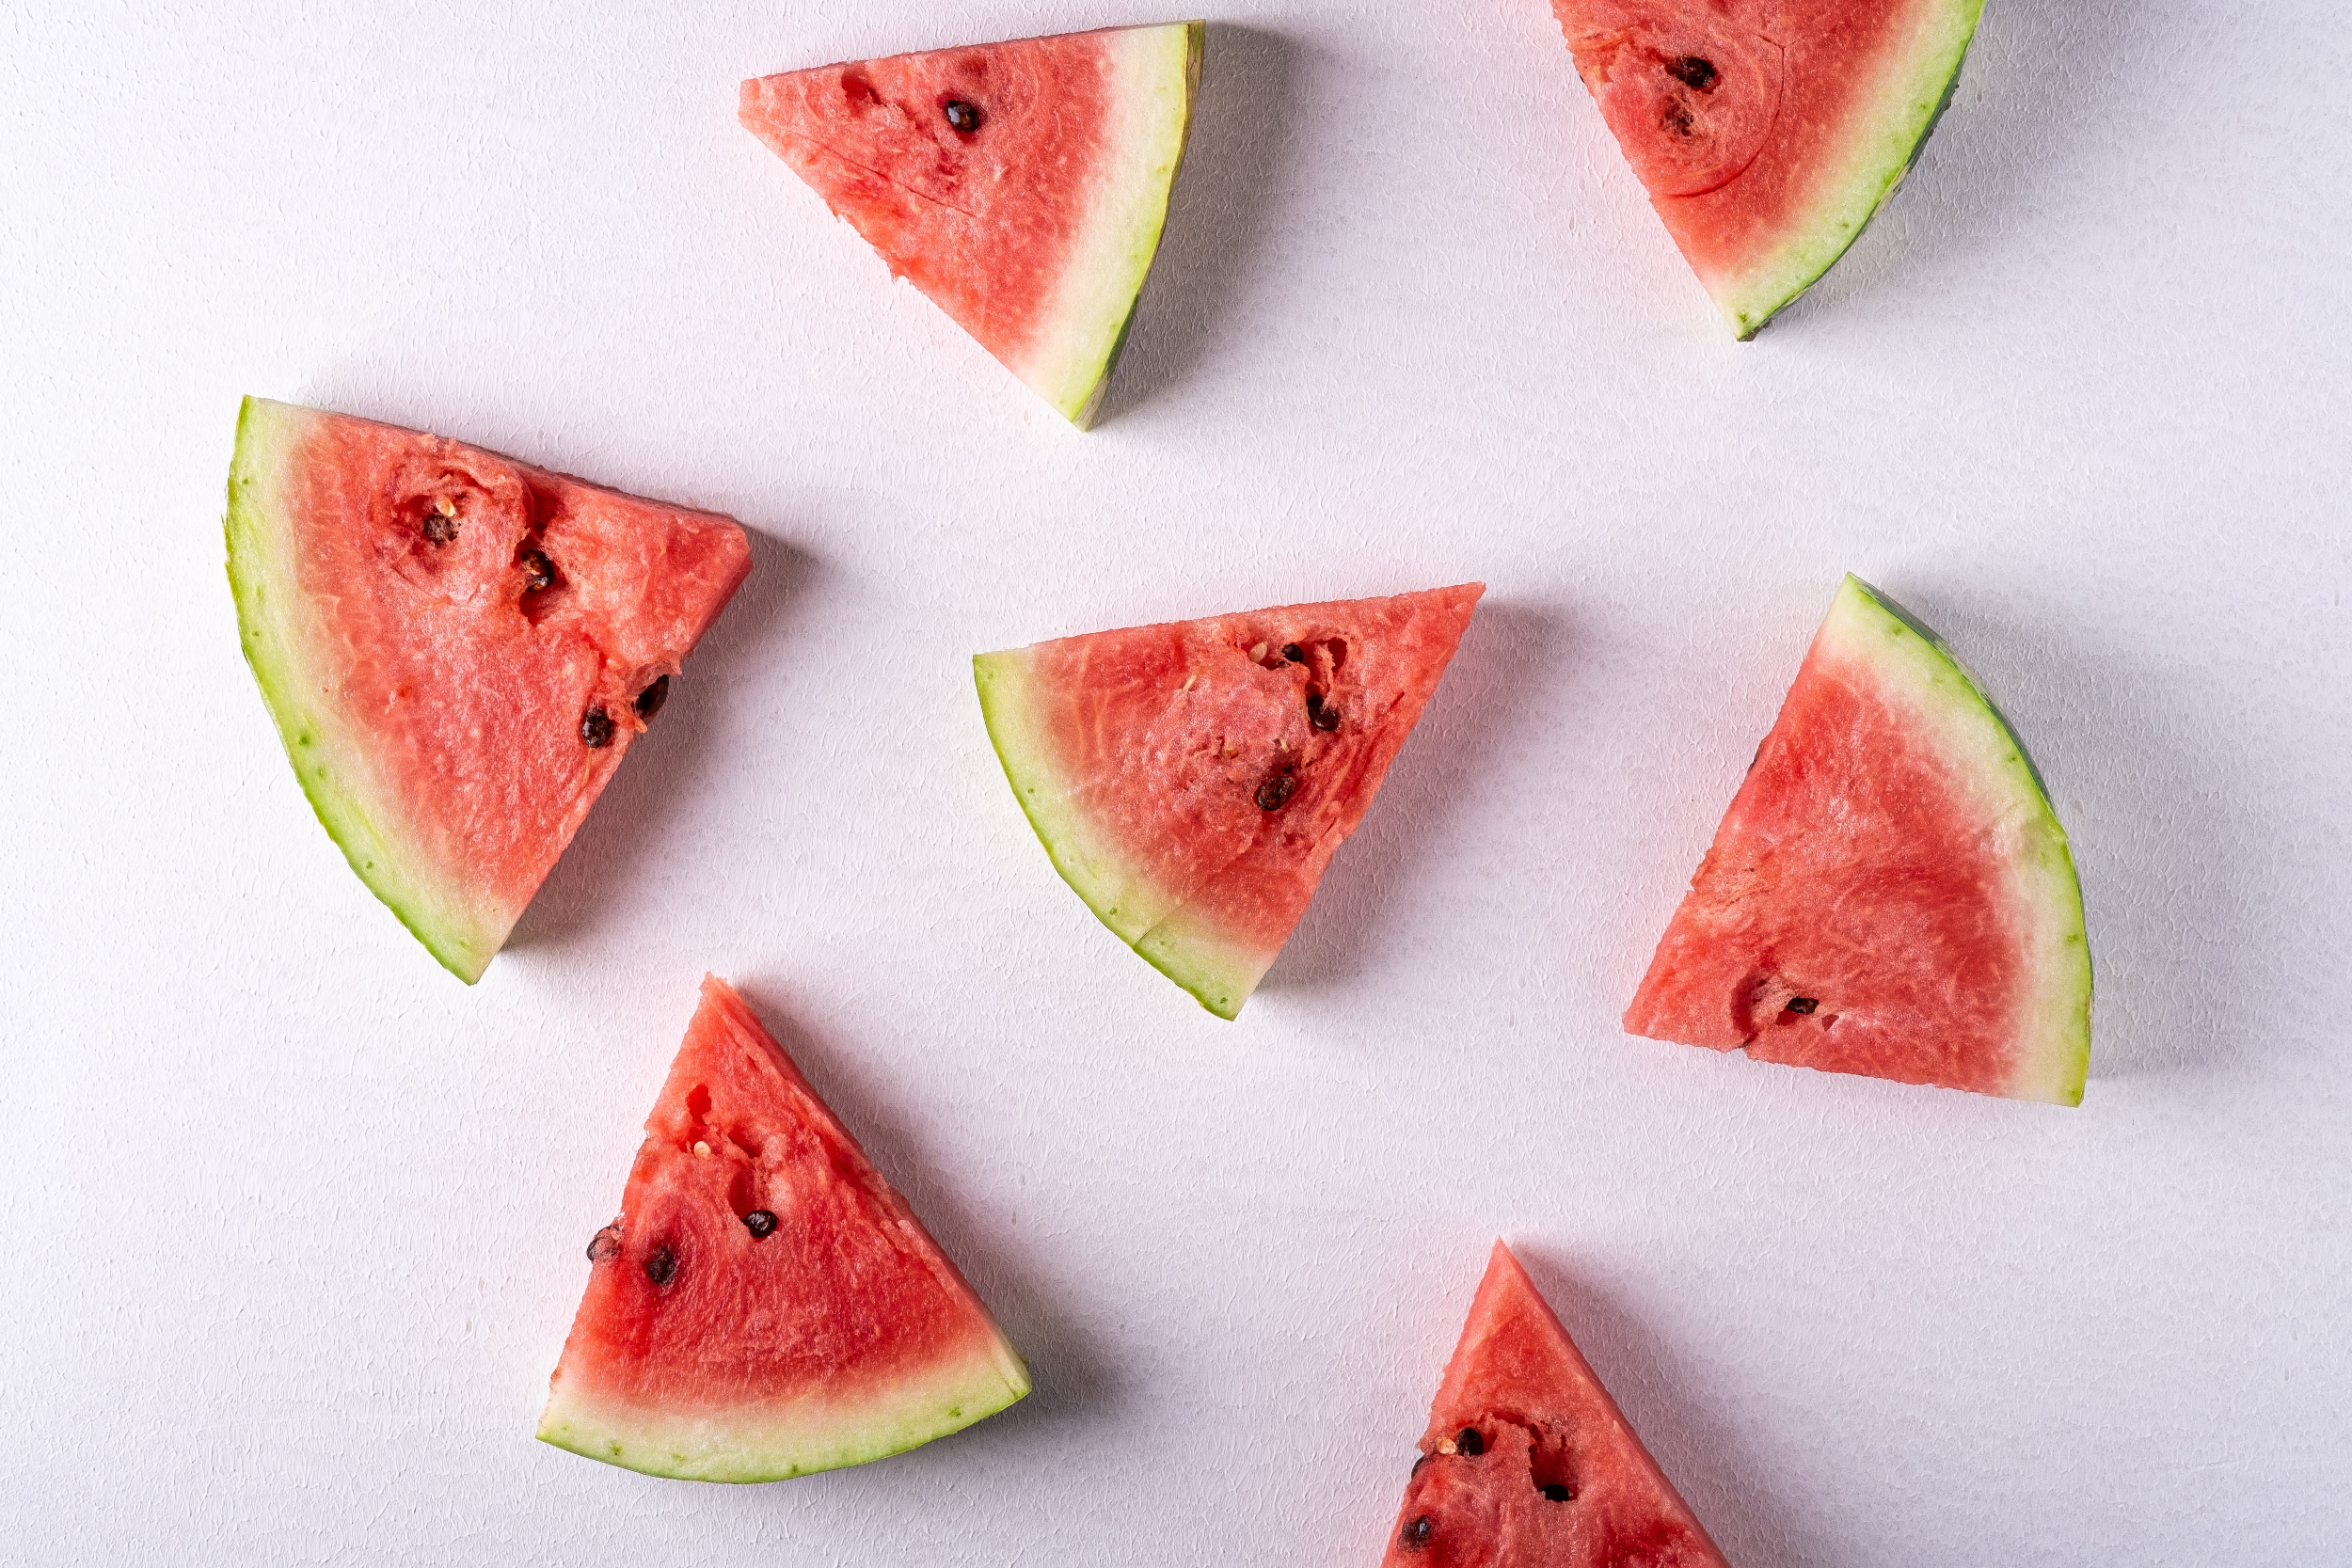 Wedges of watermelon lay on top of a pink background